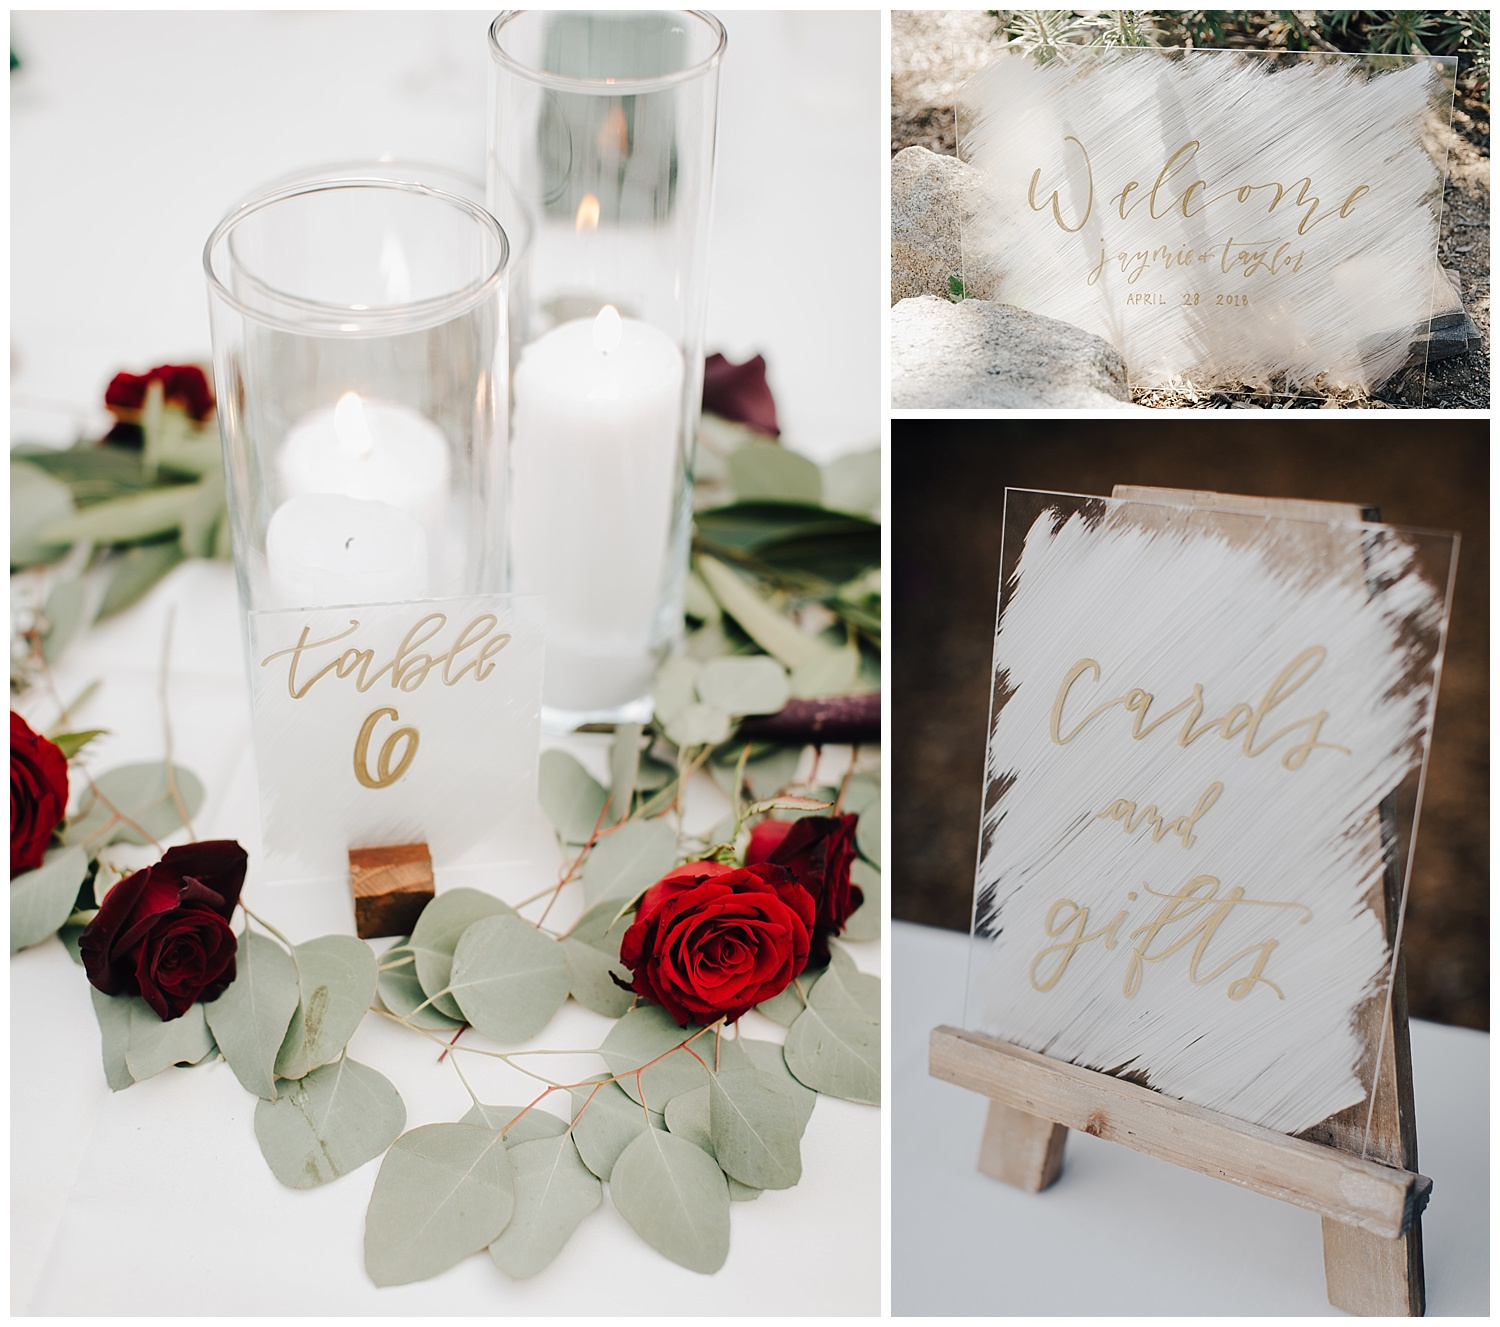 los-laureles-lodge-carmel-valley-wedding-calligraphy-details.jpg